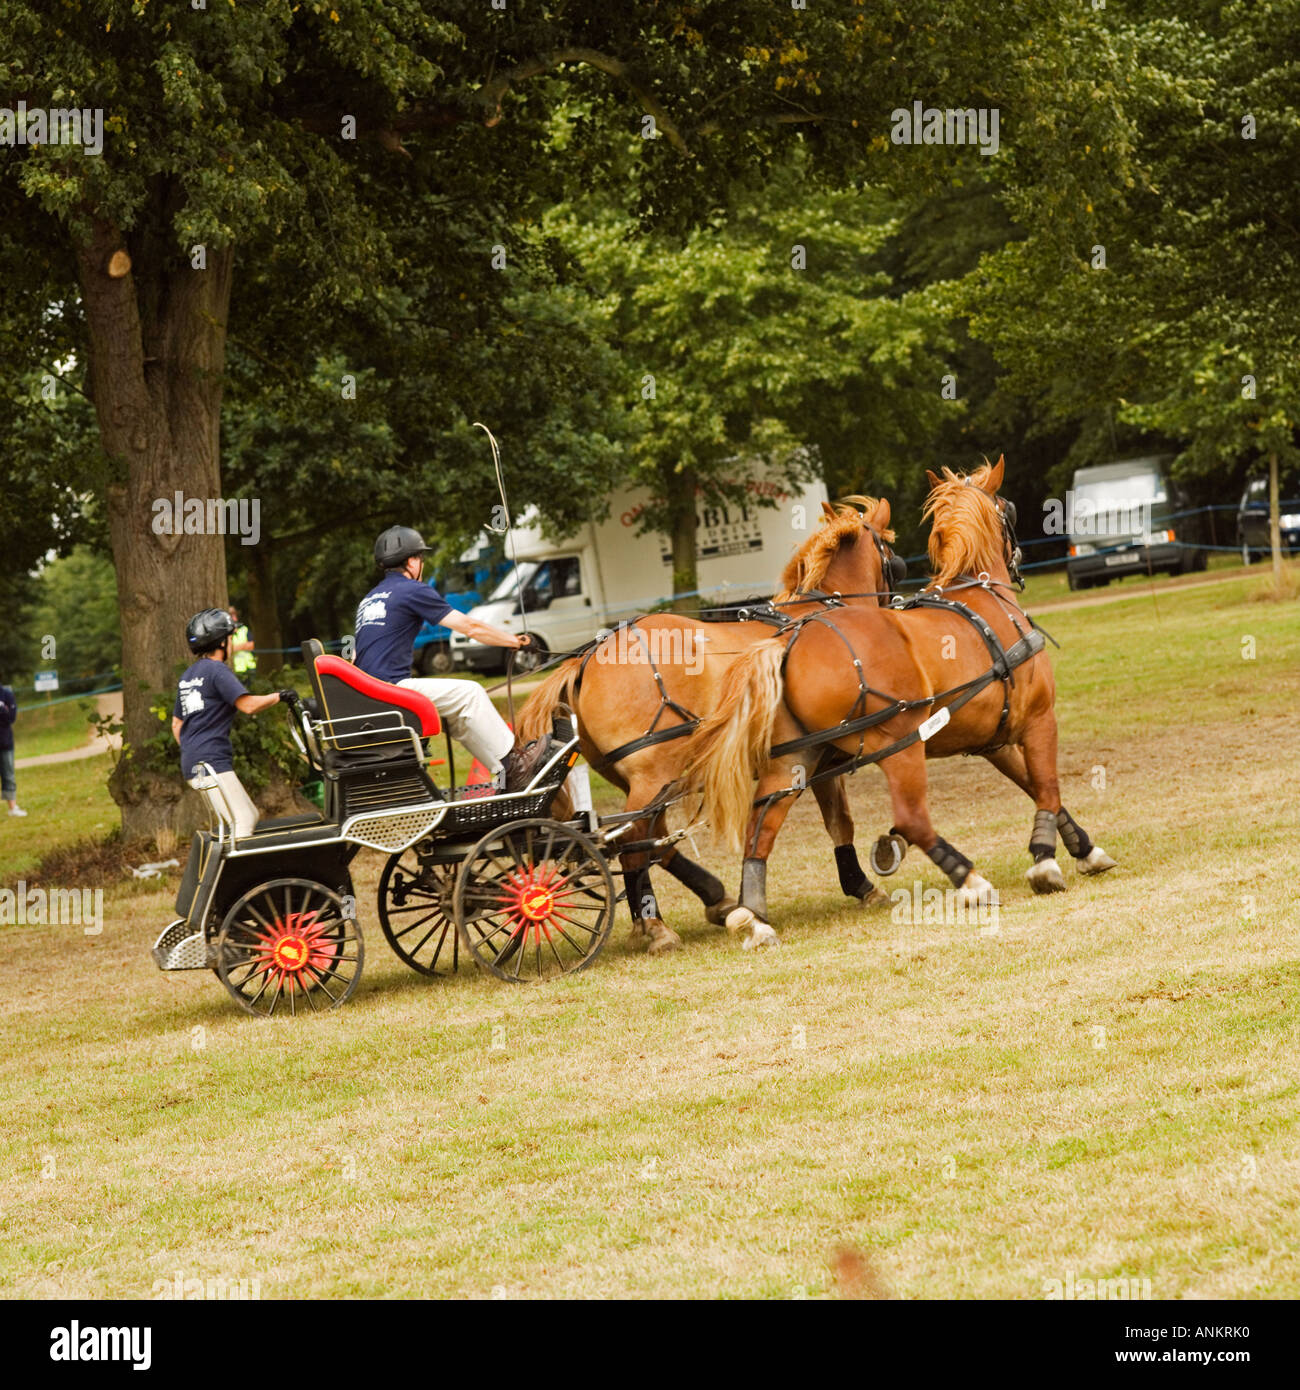 Hatfield Country Show. No model release required: movement blur, distance makes all unrecognizable - Stock Image